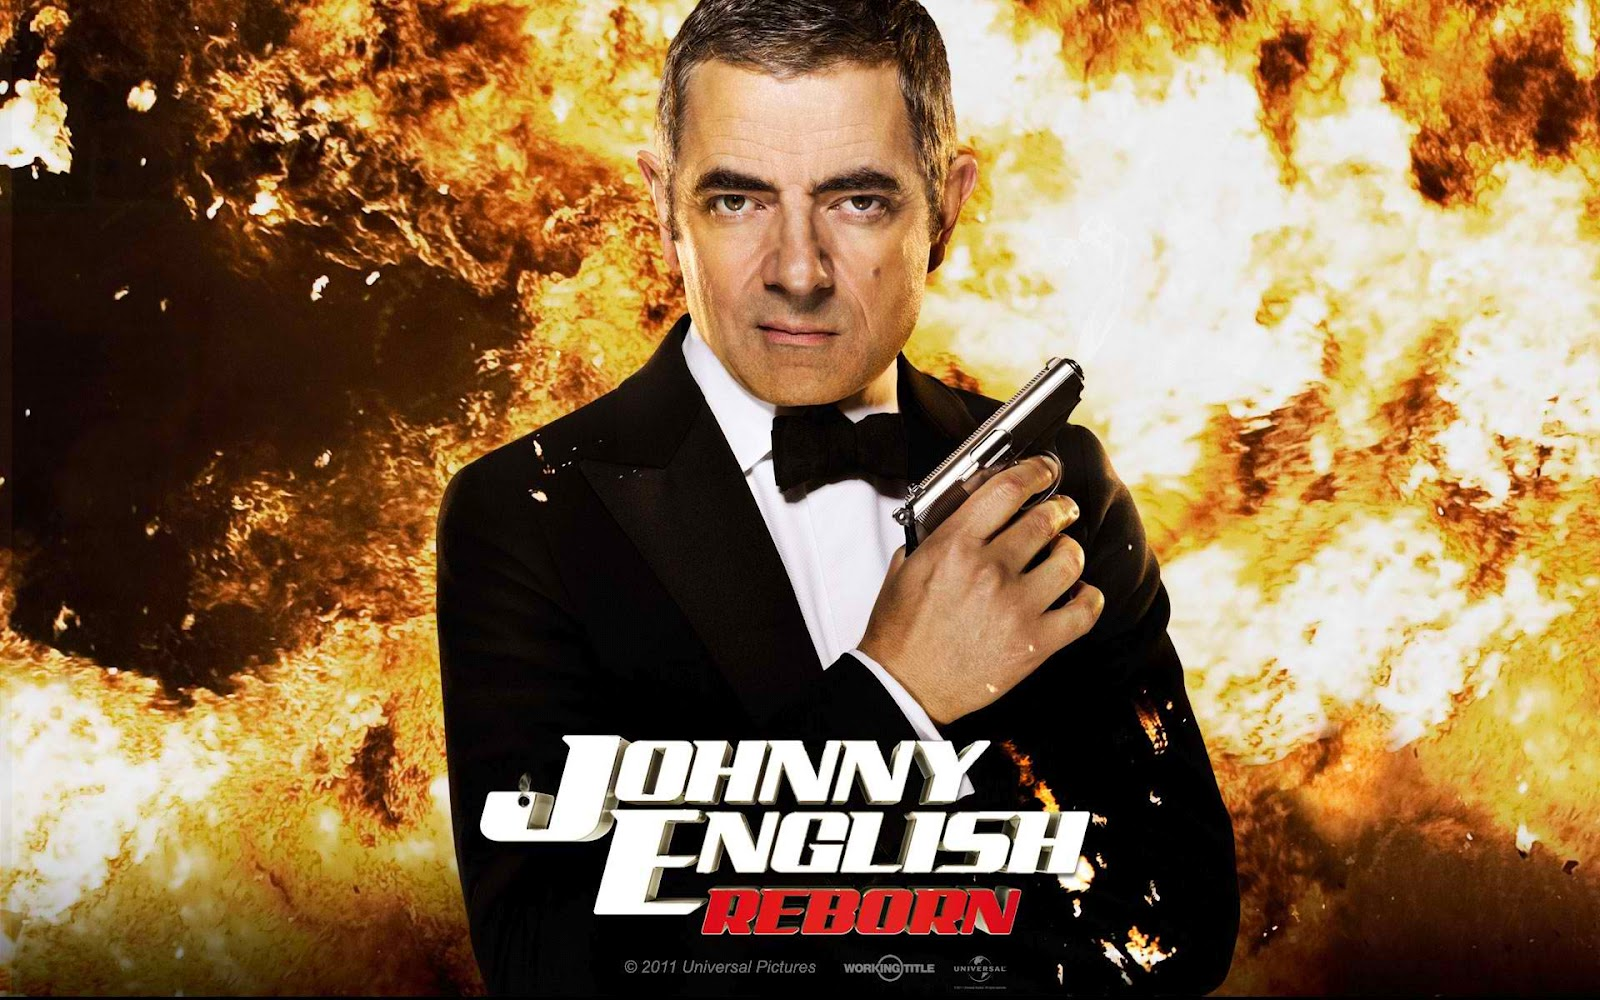 http://3.bp.blogspot.com/-cnA43tQTOgk/T-JlJELthkI/AAAAAAAAAtY/0bLLzXjMH1M/s1600/Johnny_English_Reborn_Movie_Wallpaper_1920x1200_7670.jpg